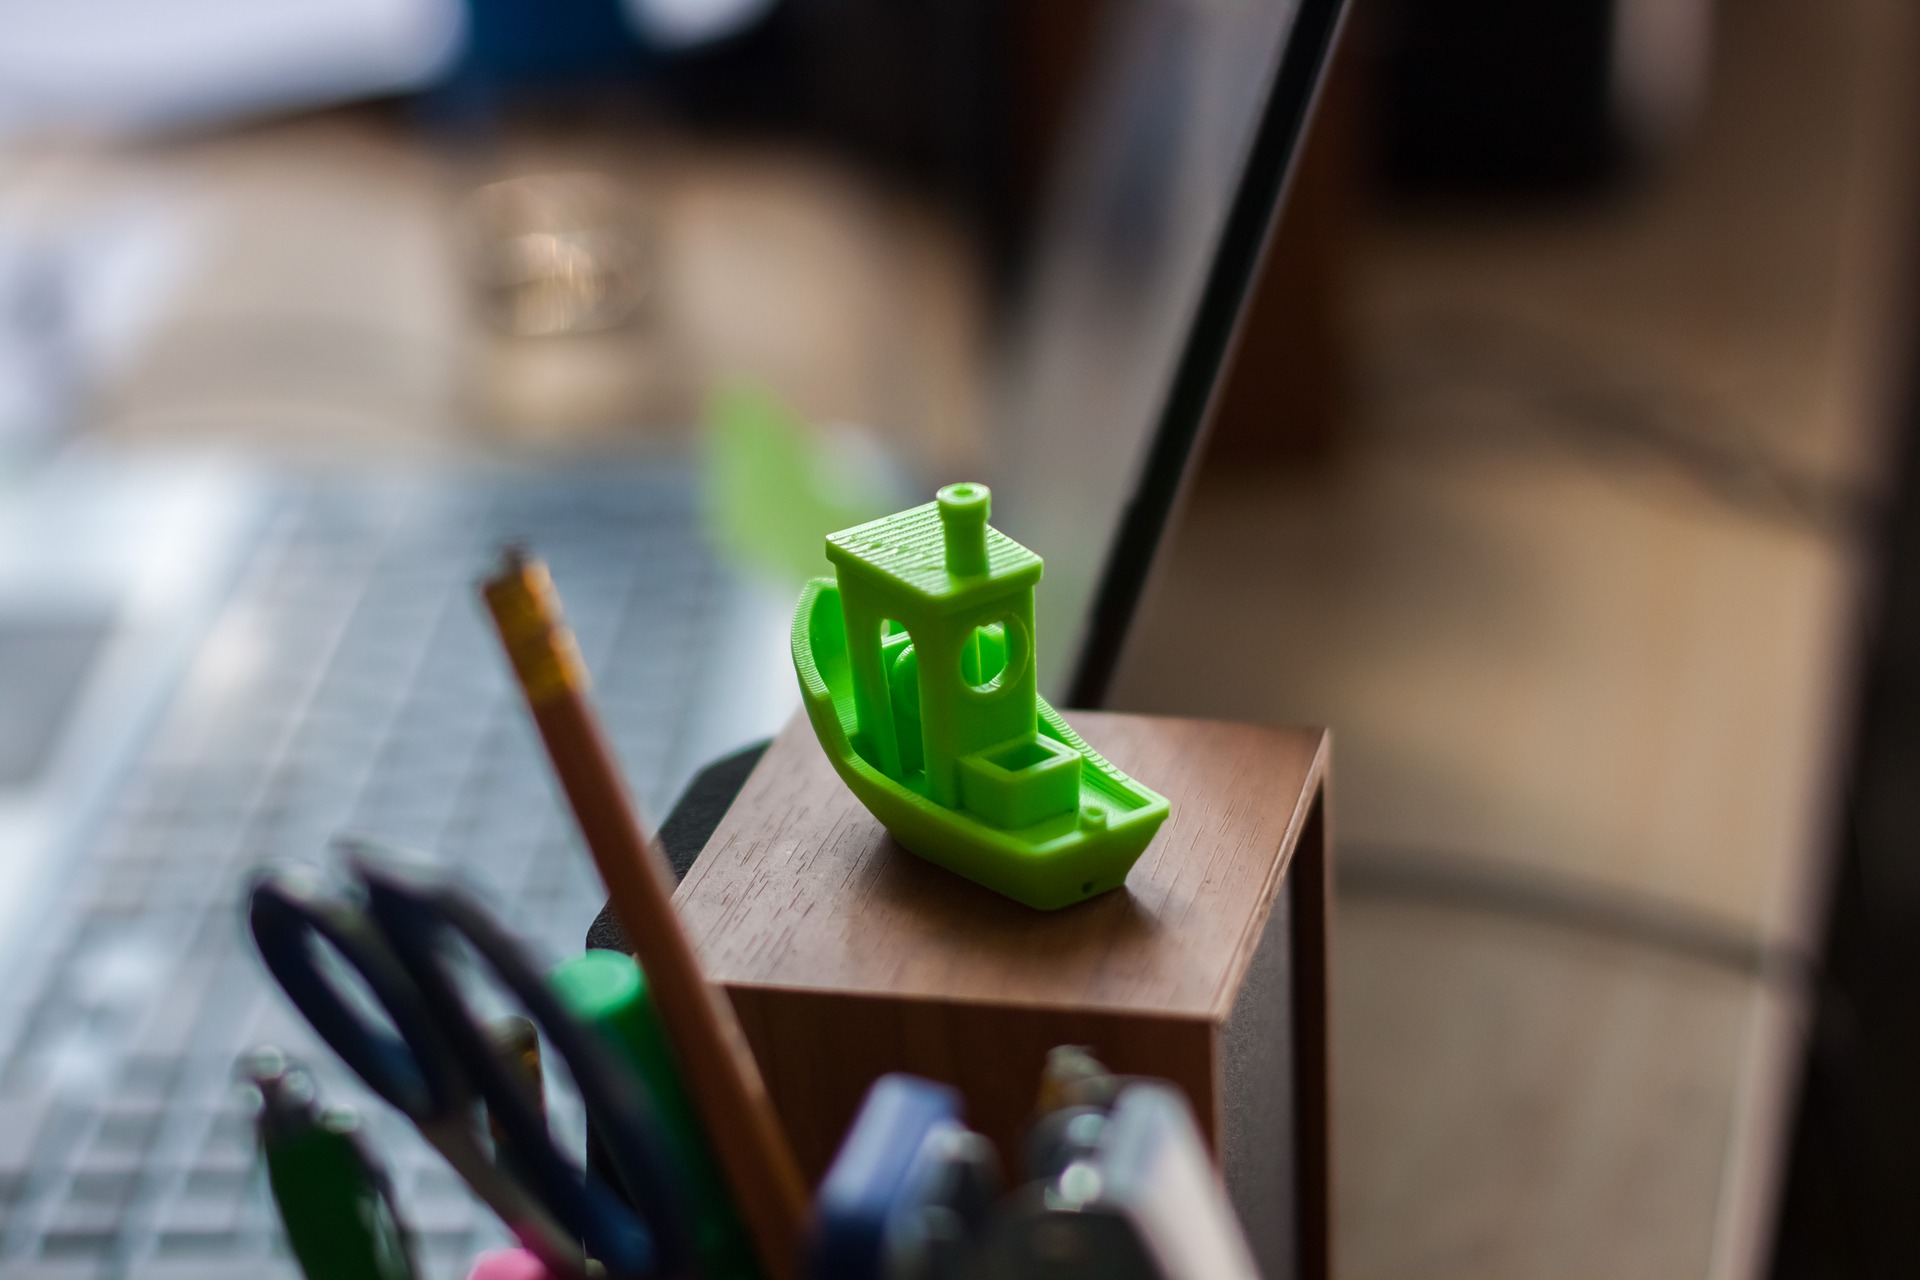 3D Printing and Tinkercad